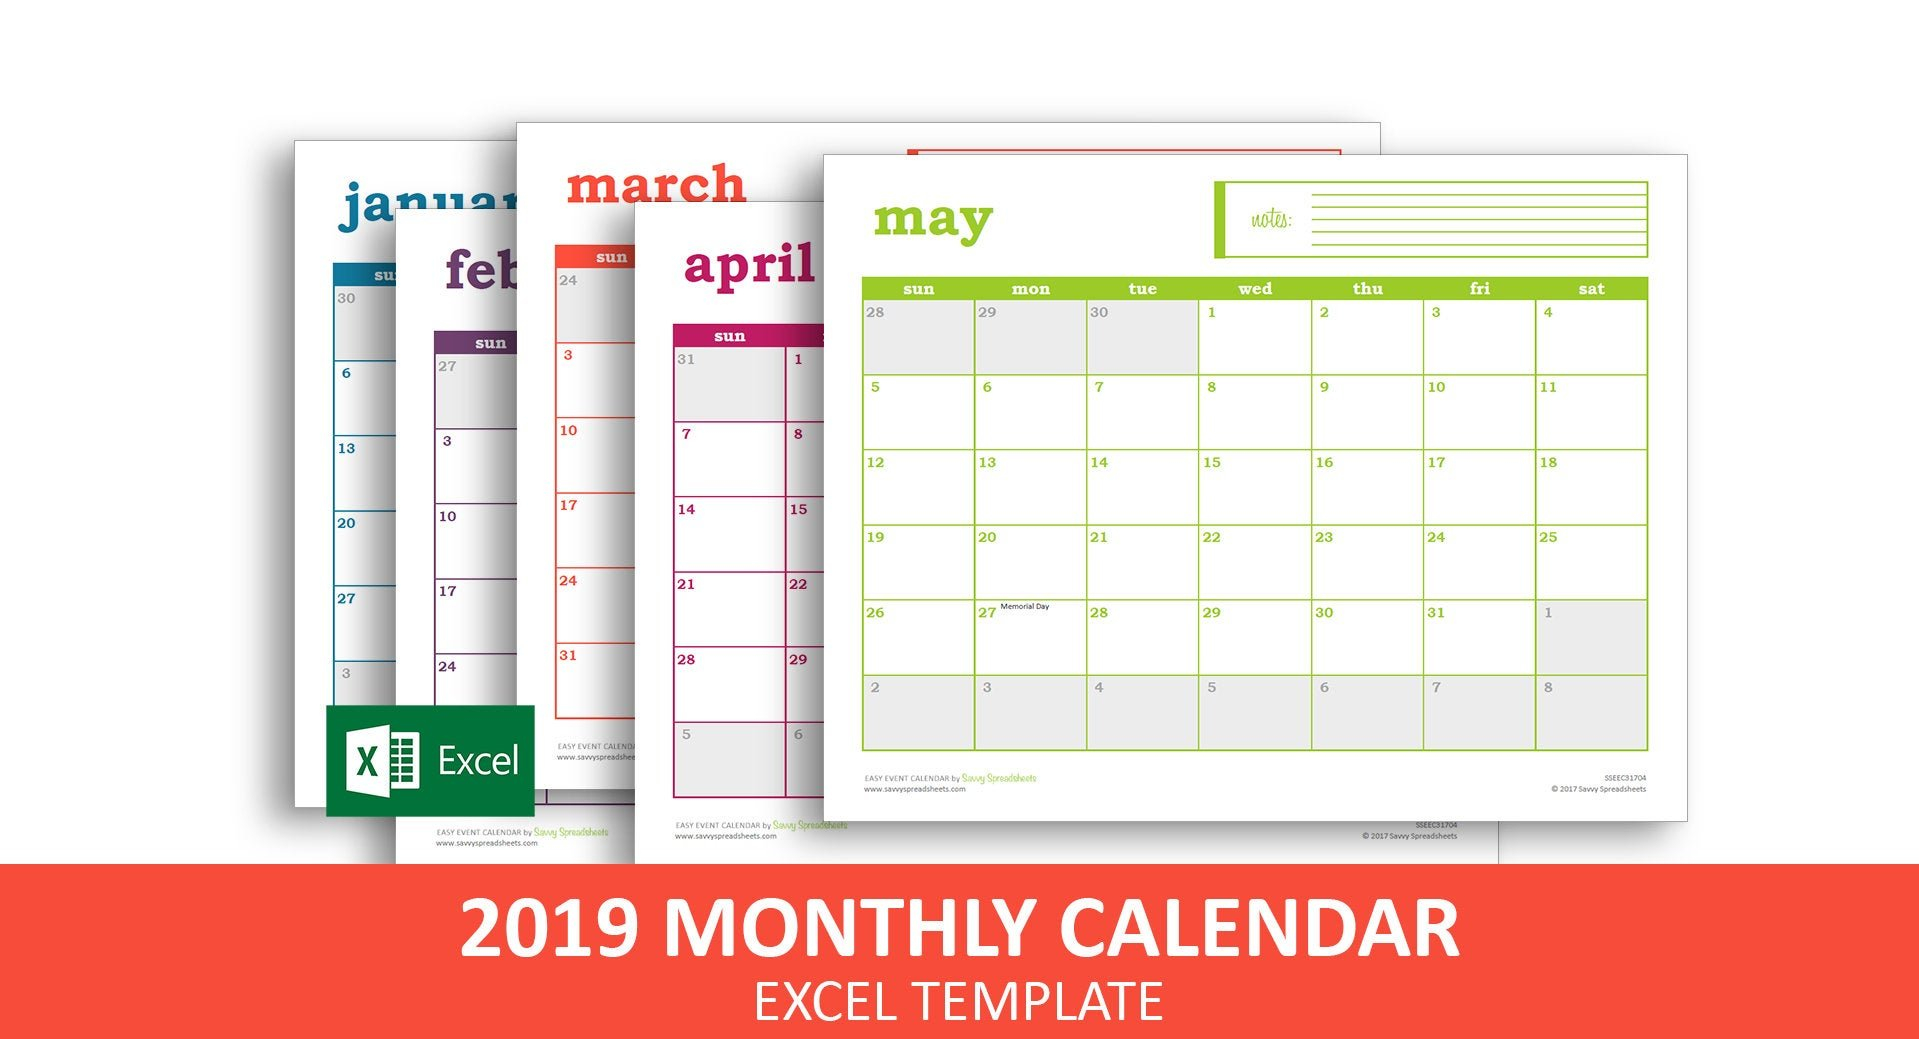 Easy Event Calendar 2019 Excel Template Printable Monthly | Etsy Calendar 2019 Excel Romania